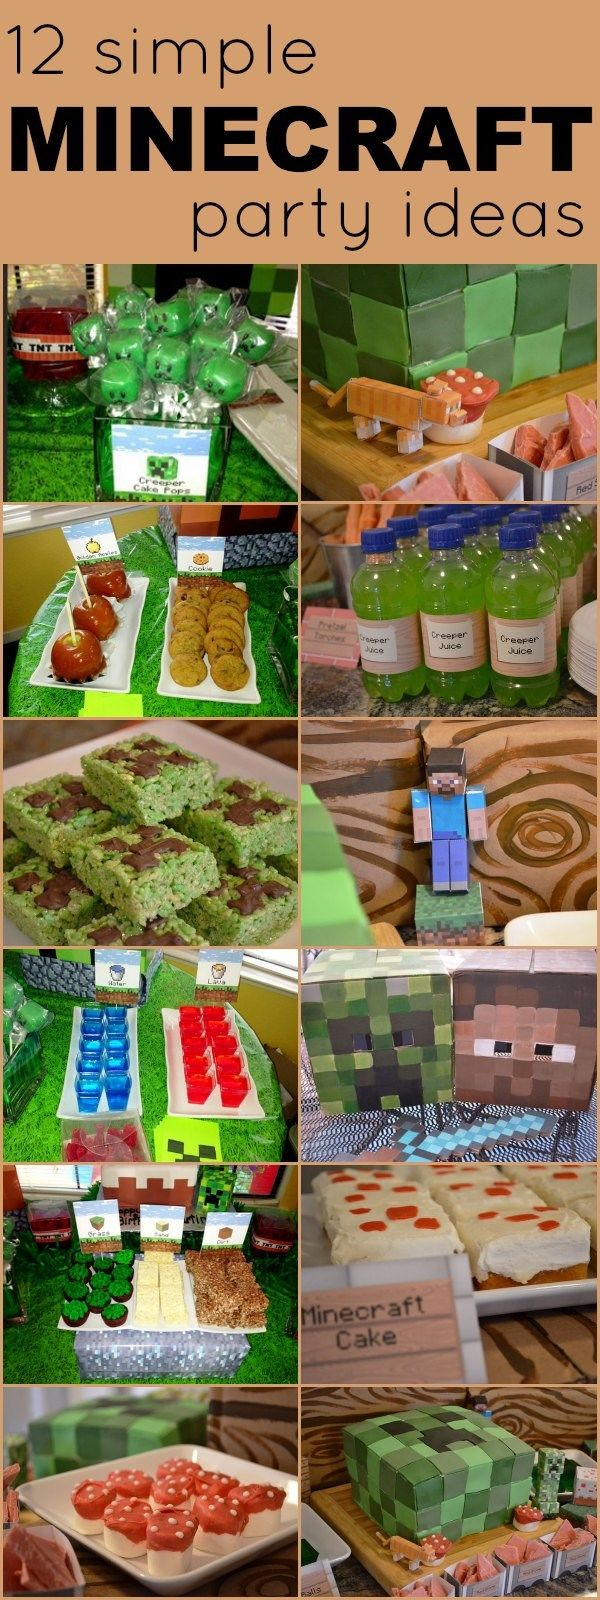 We Heart Parties: 12 Simple Minecraft Party Ideas